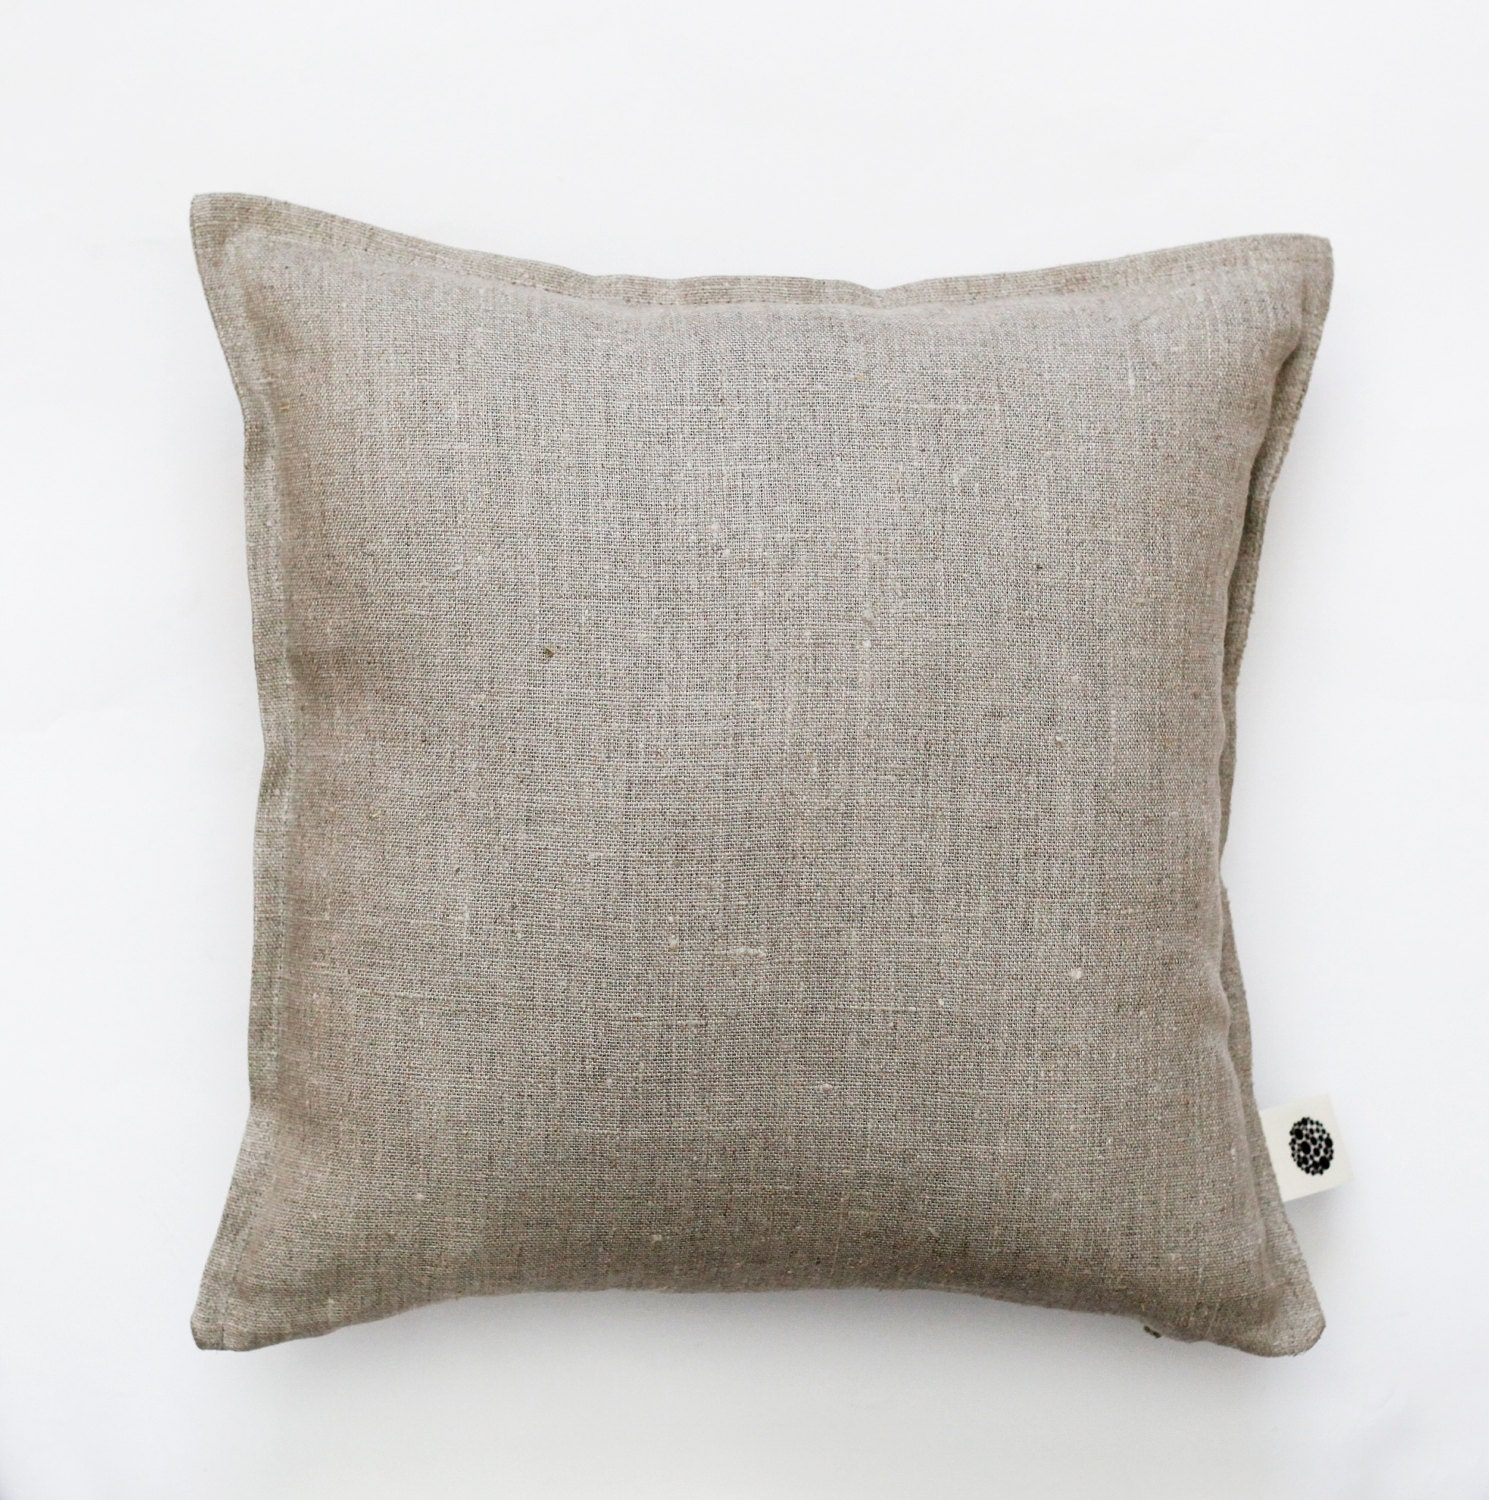 Linen pillow cover decorative pillows covers linen by pillowlink